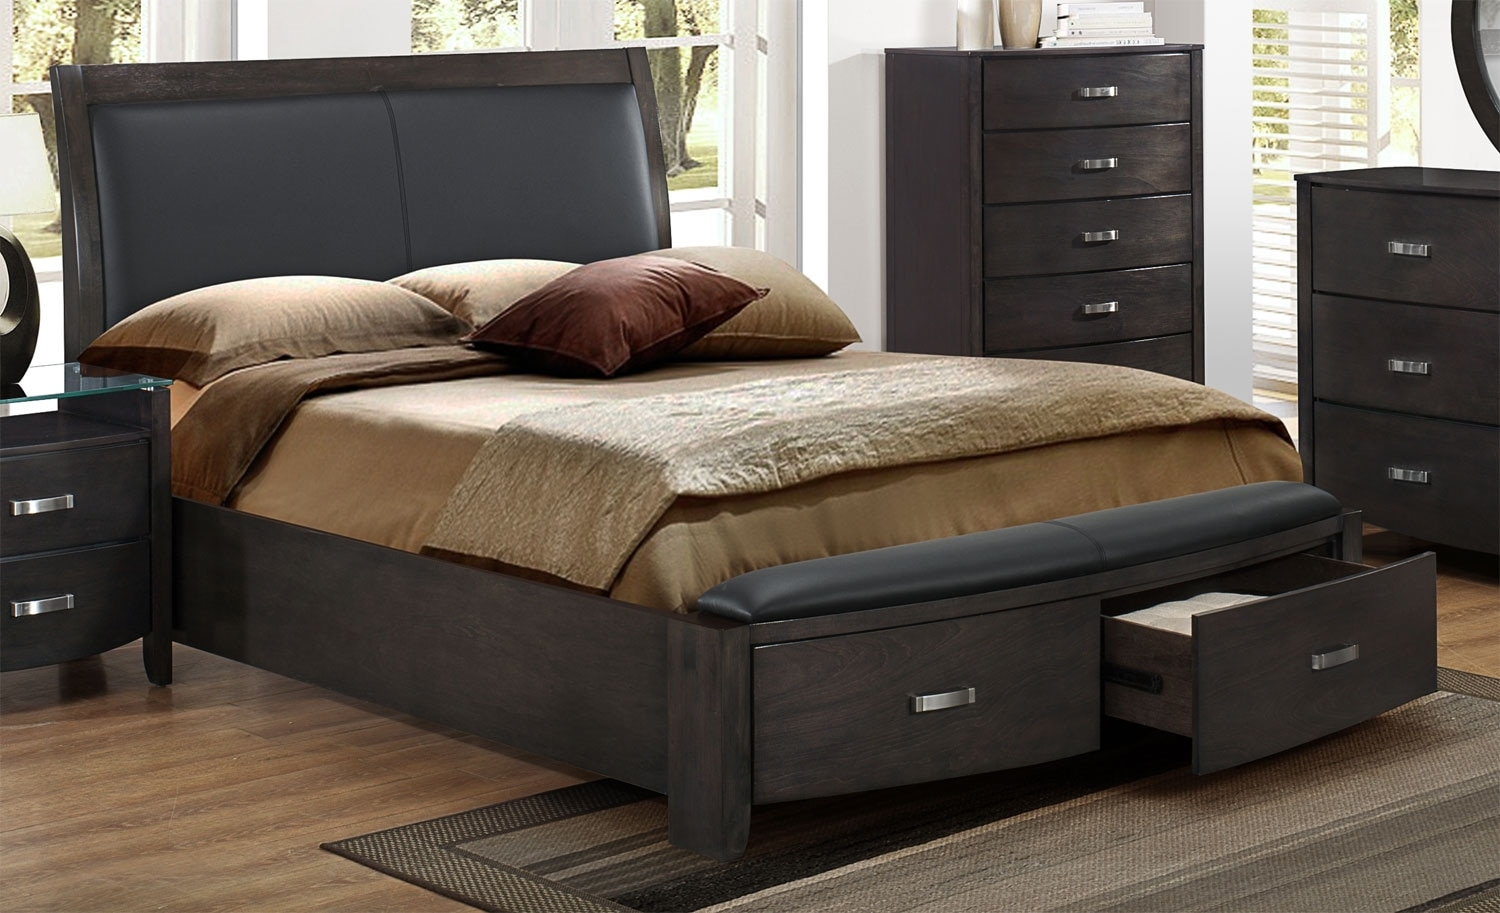 Cinema king bed charcoal leon 39 s for Furniture and beds